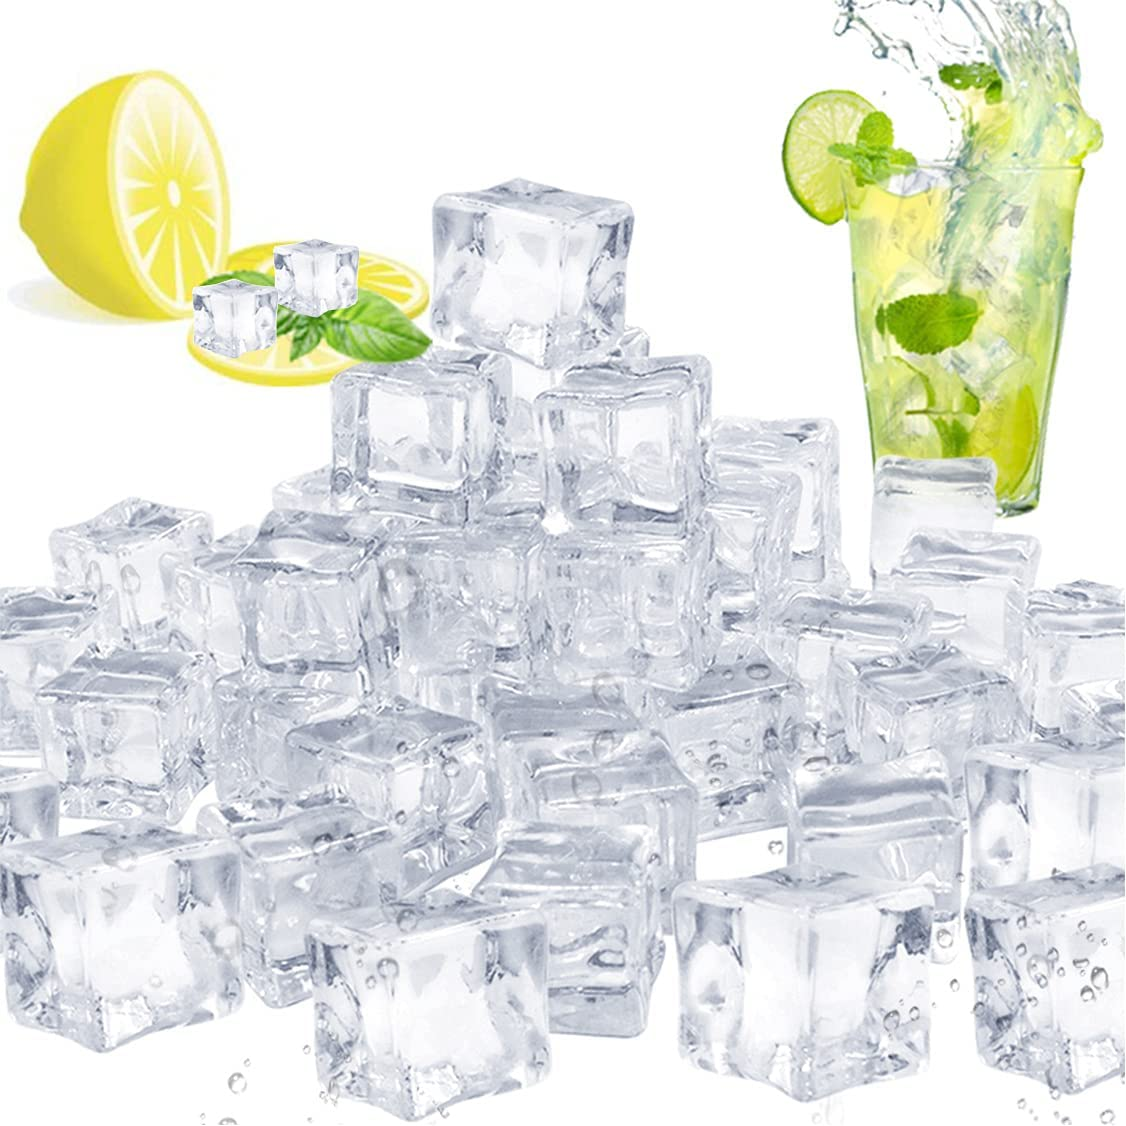 Pynqdfu 100 Pcs Fake Special price Ice Clear Cubes Decorative Cube Acrylic Bargain